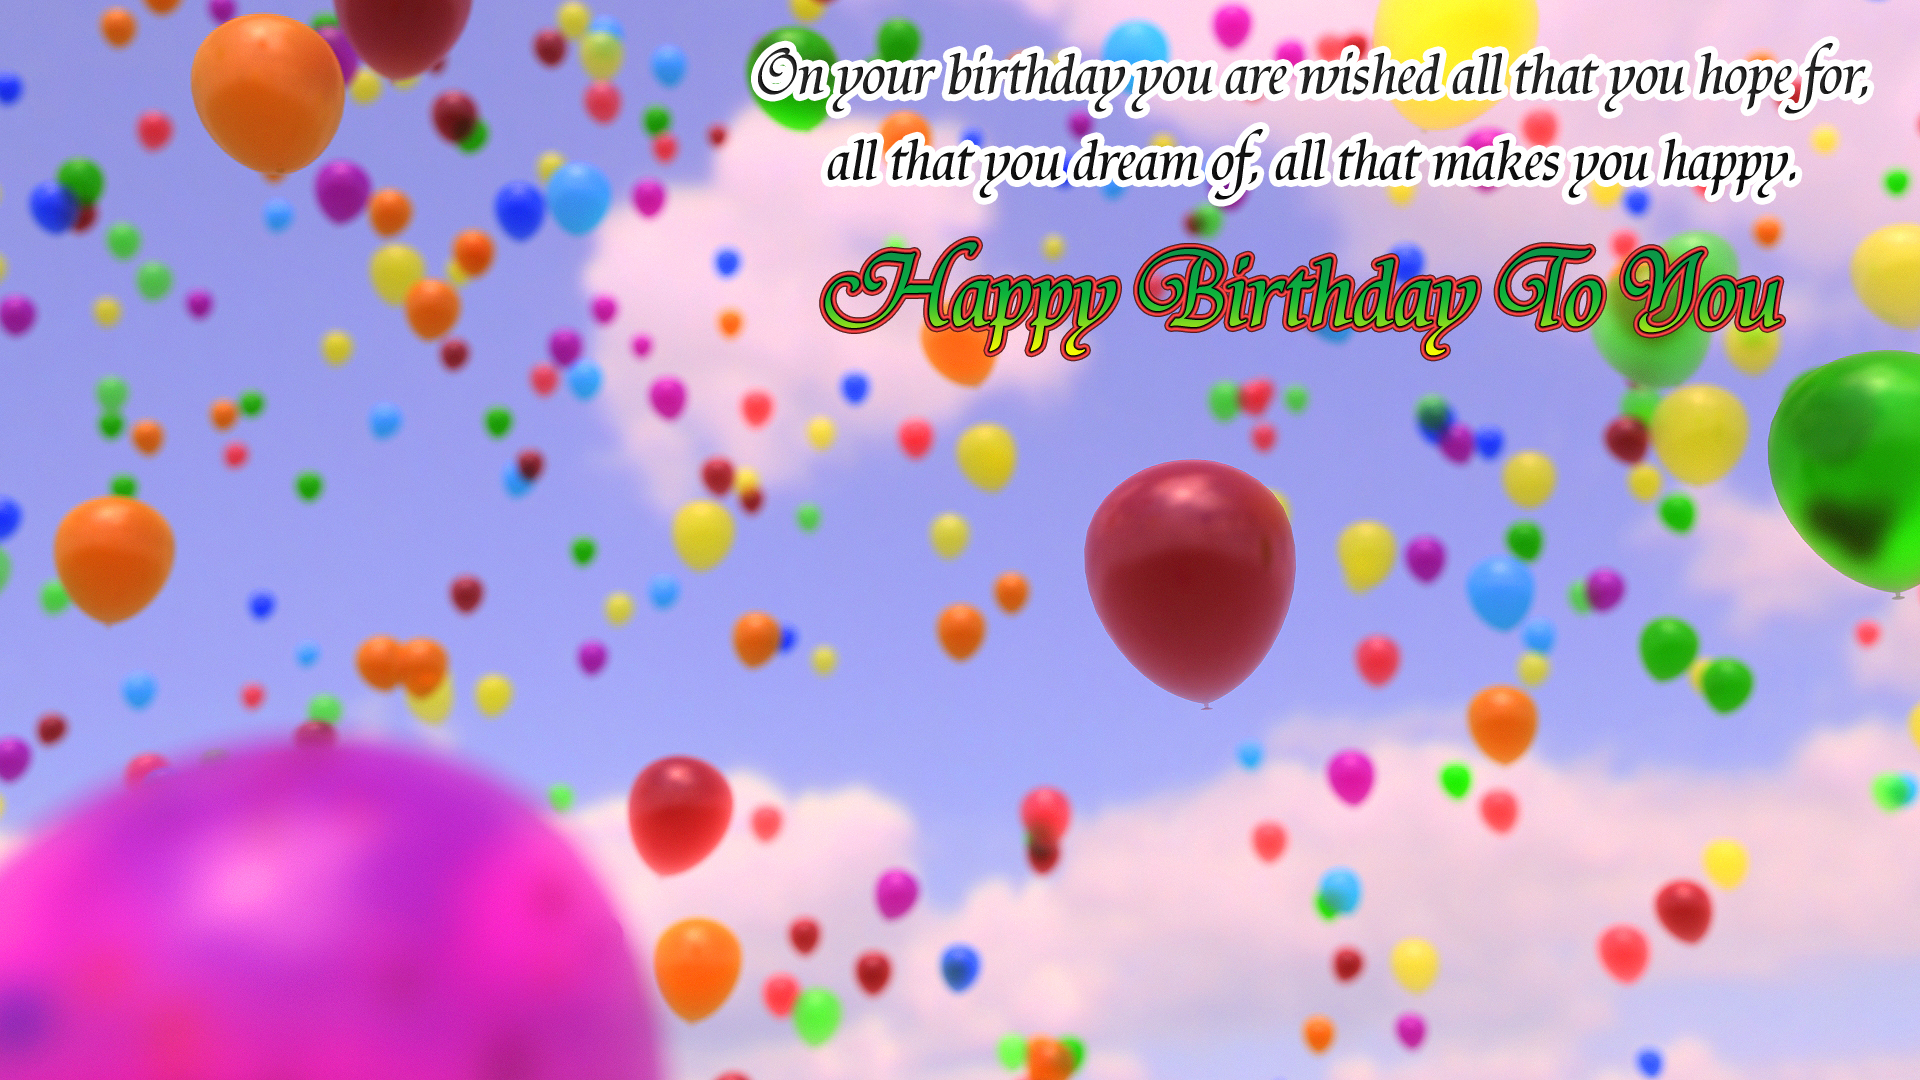 birthday wishes wallpapers with quotes ; 039b1c62fdd29fbc284d7e49722ef746